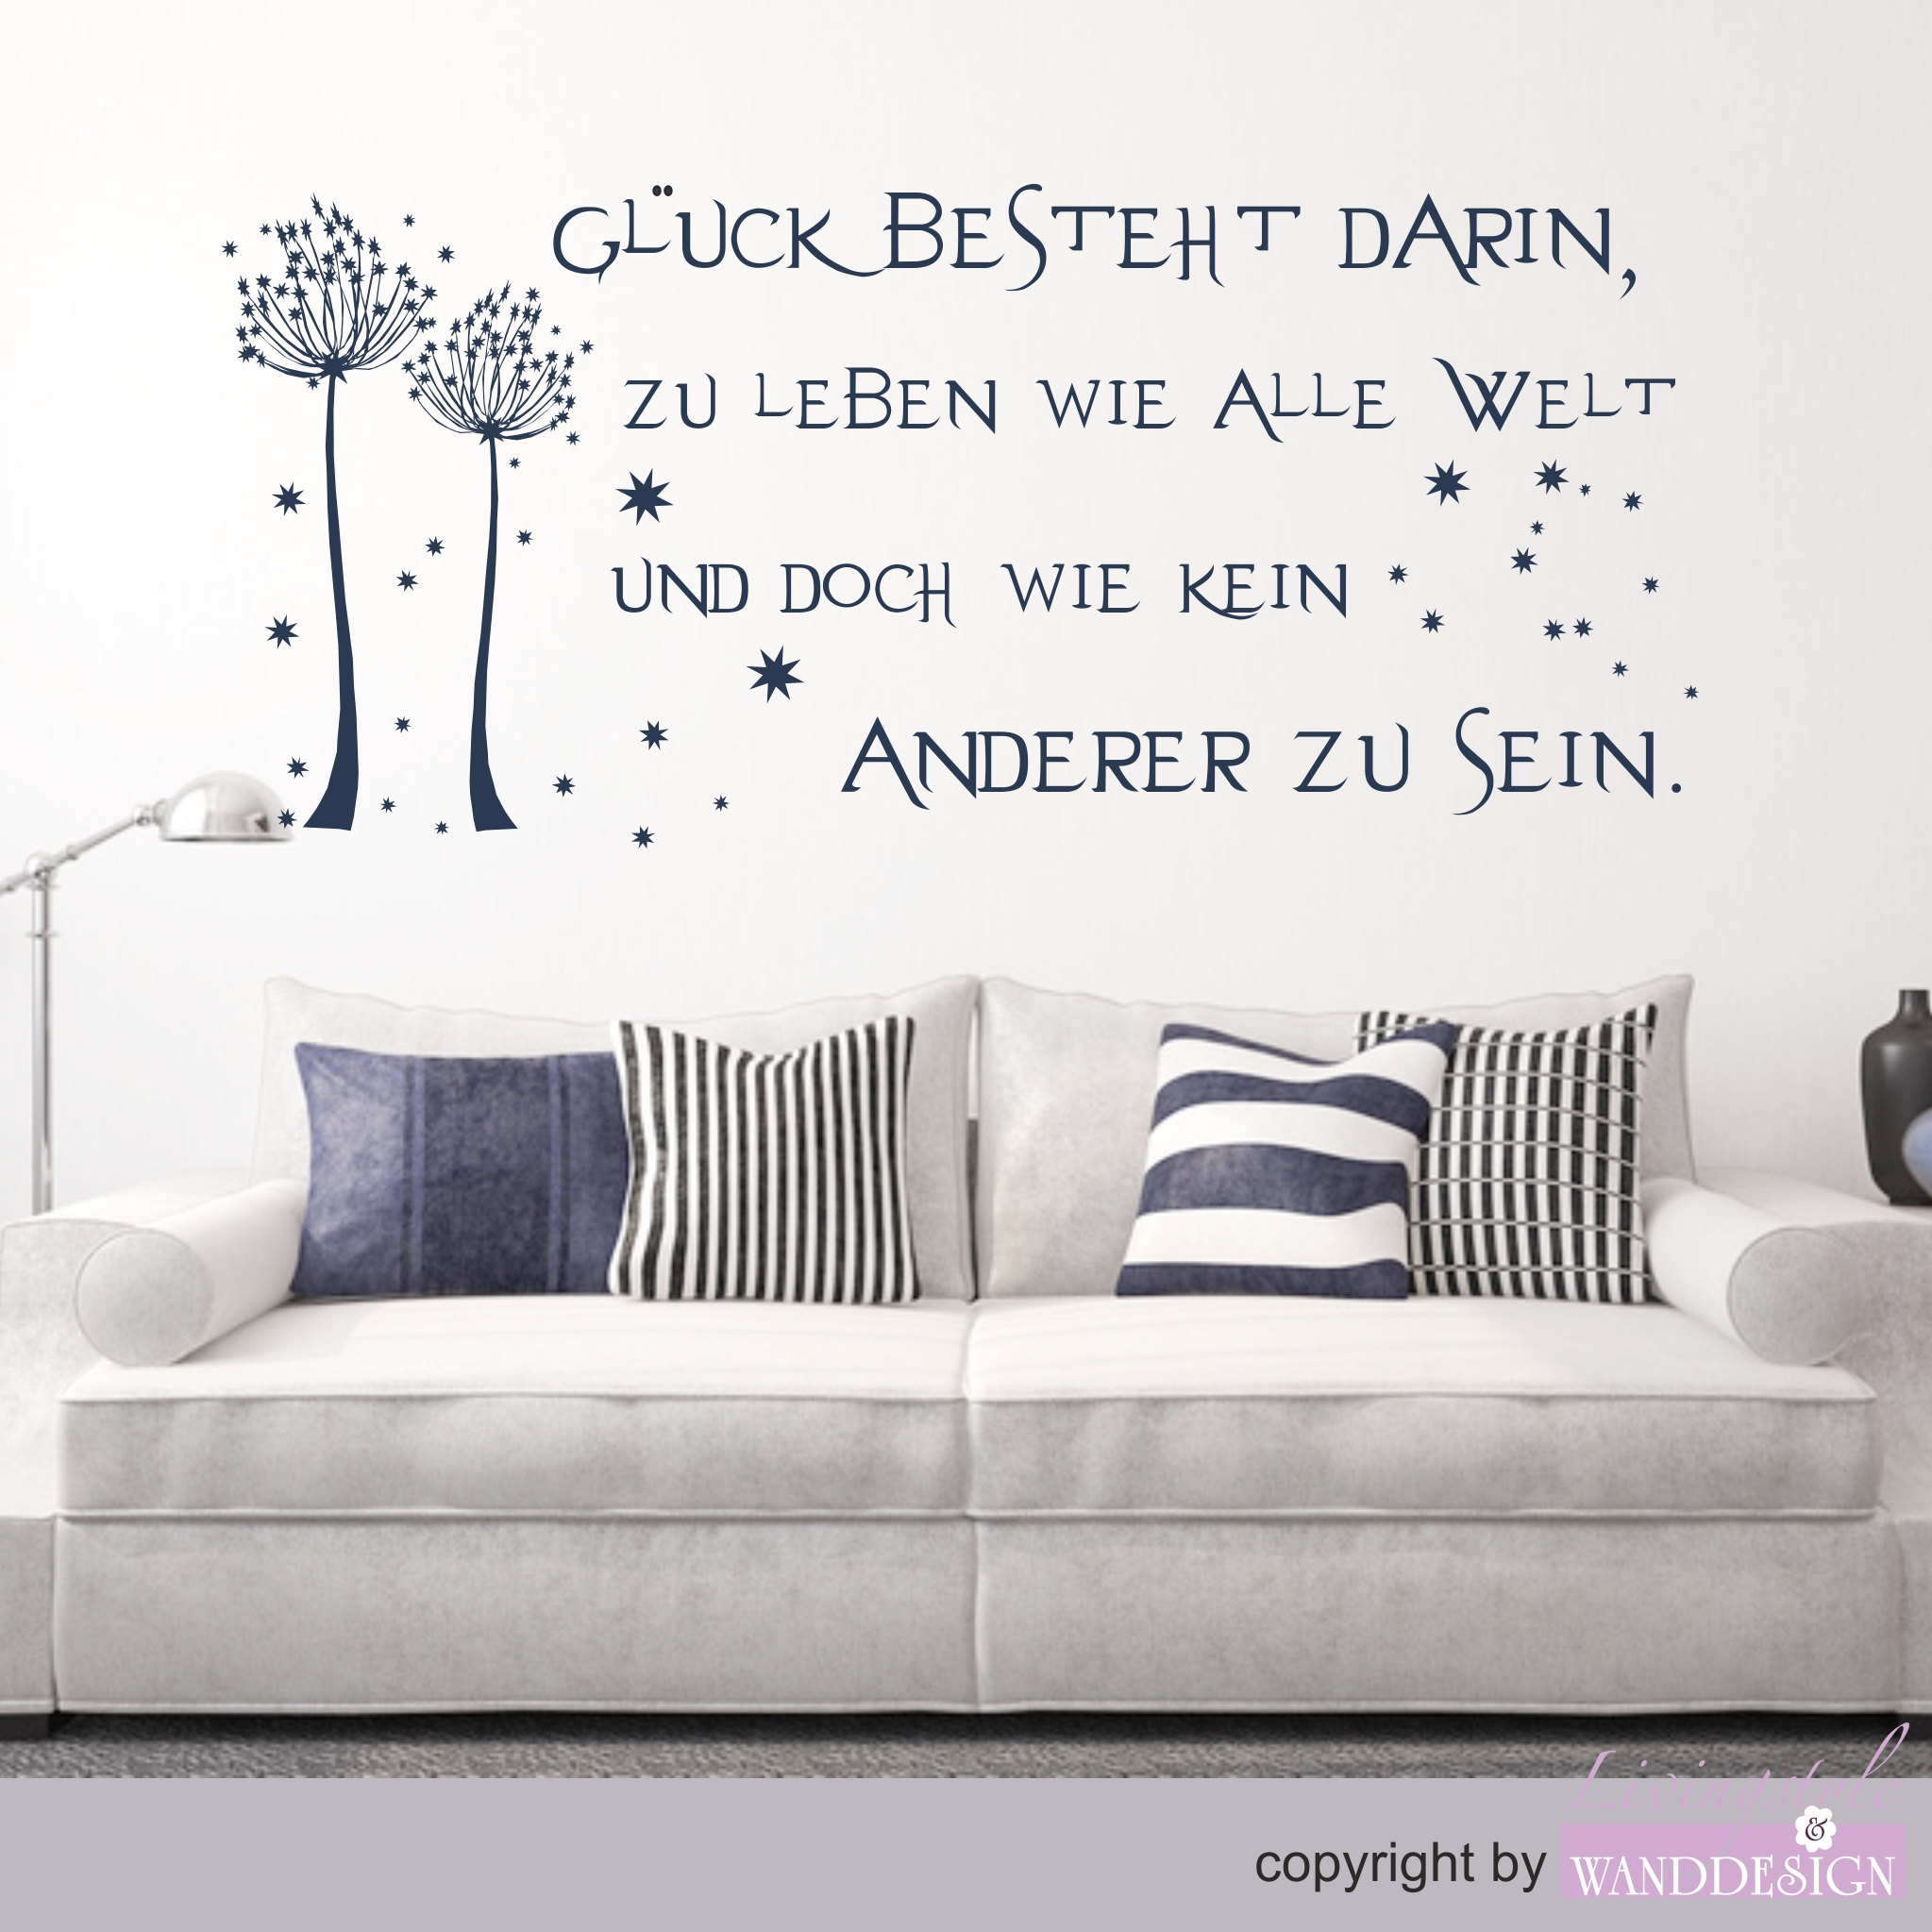 wandtattoo spruch gl ck spr che zitate wandtattoos livingstyle wanddesign. Black Bedroom Furniture Sets. Home Design Ideas